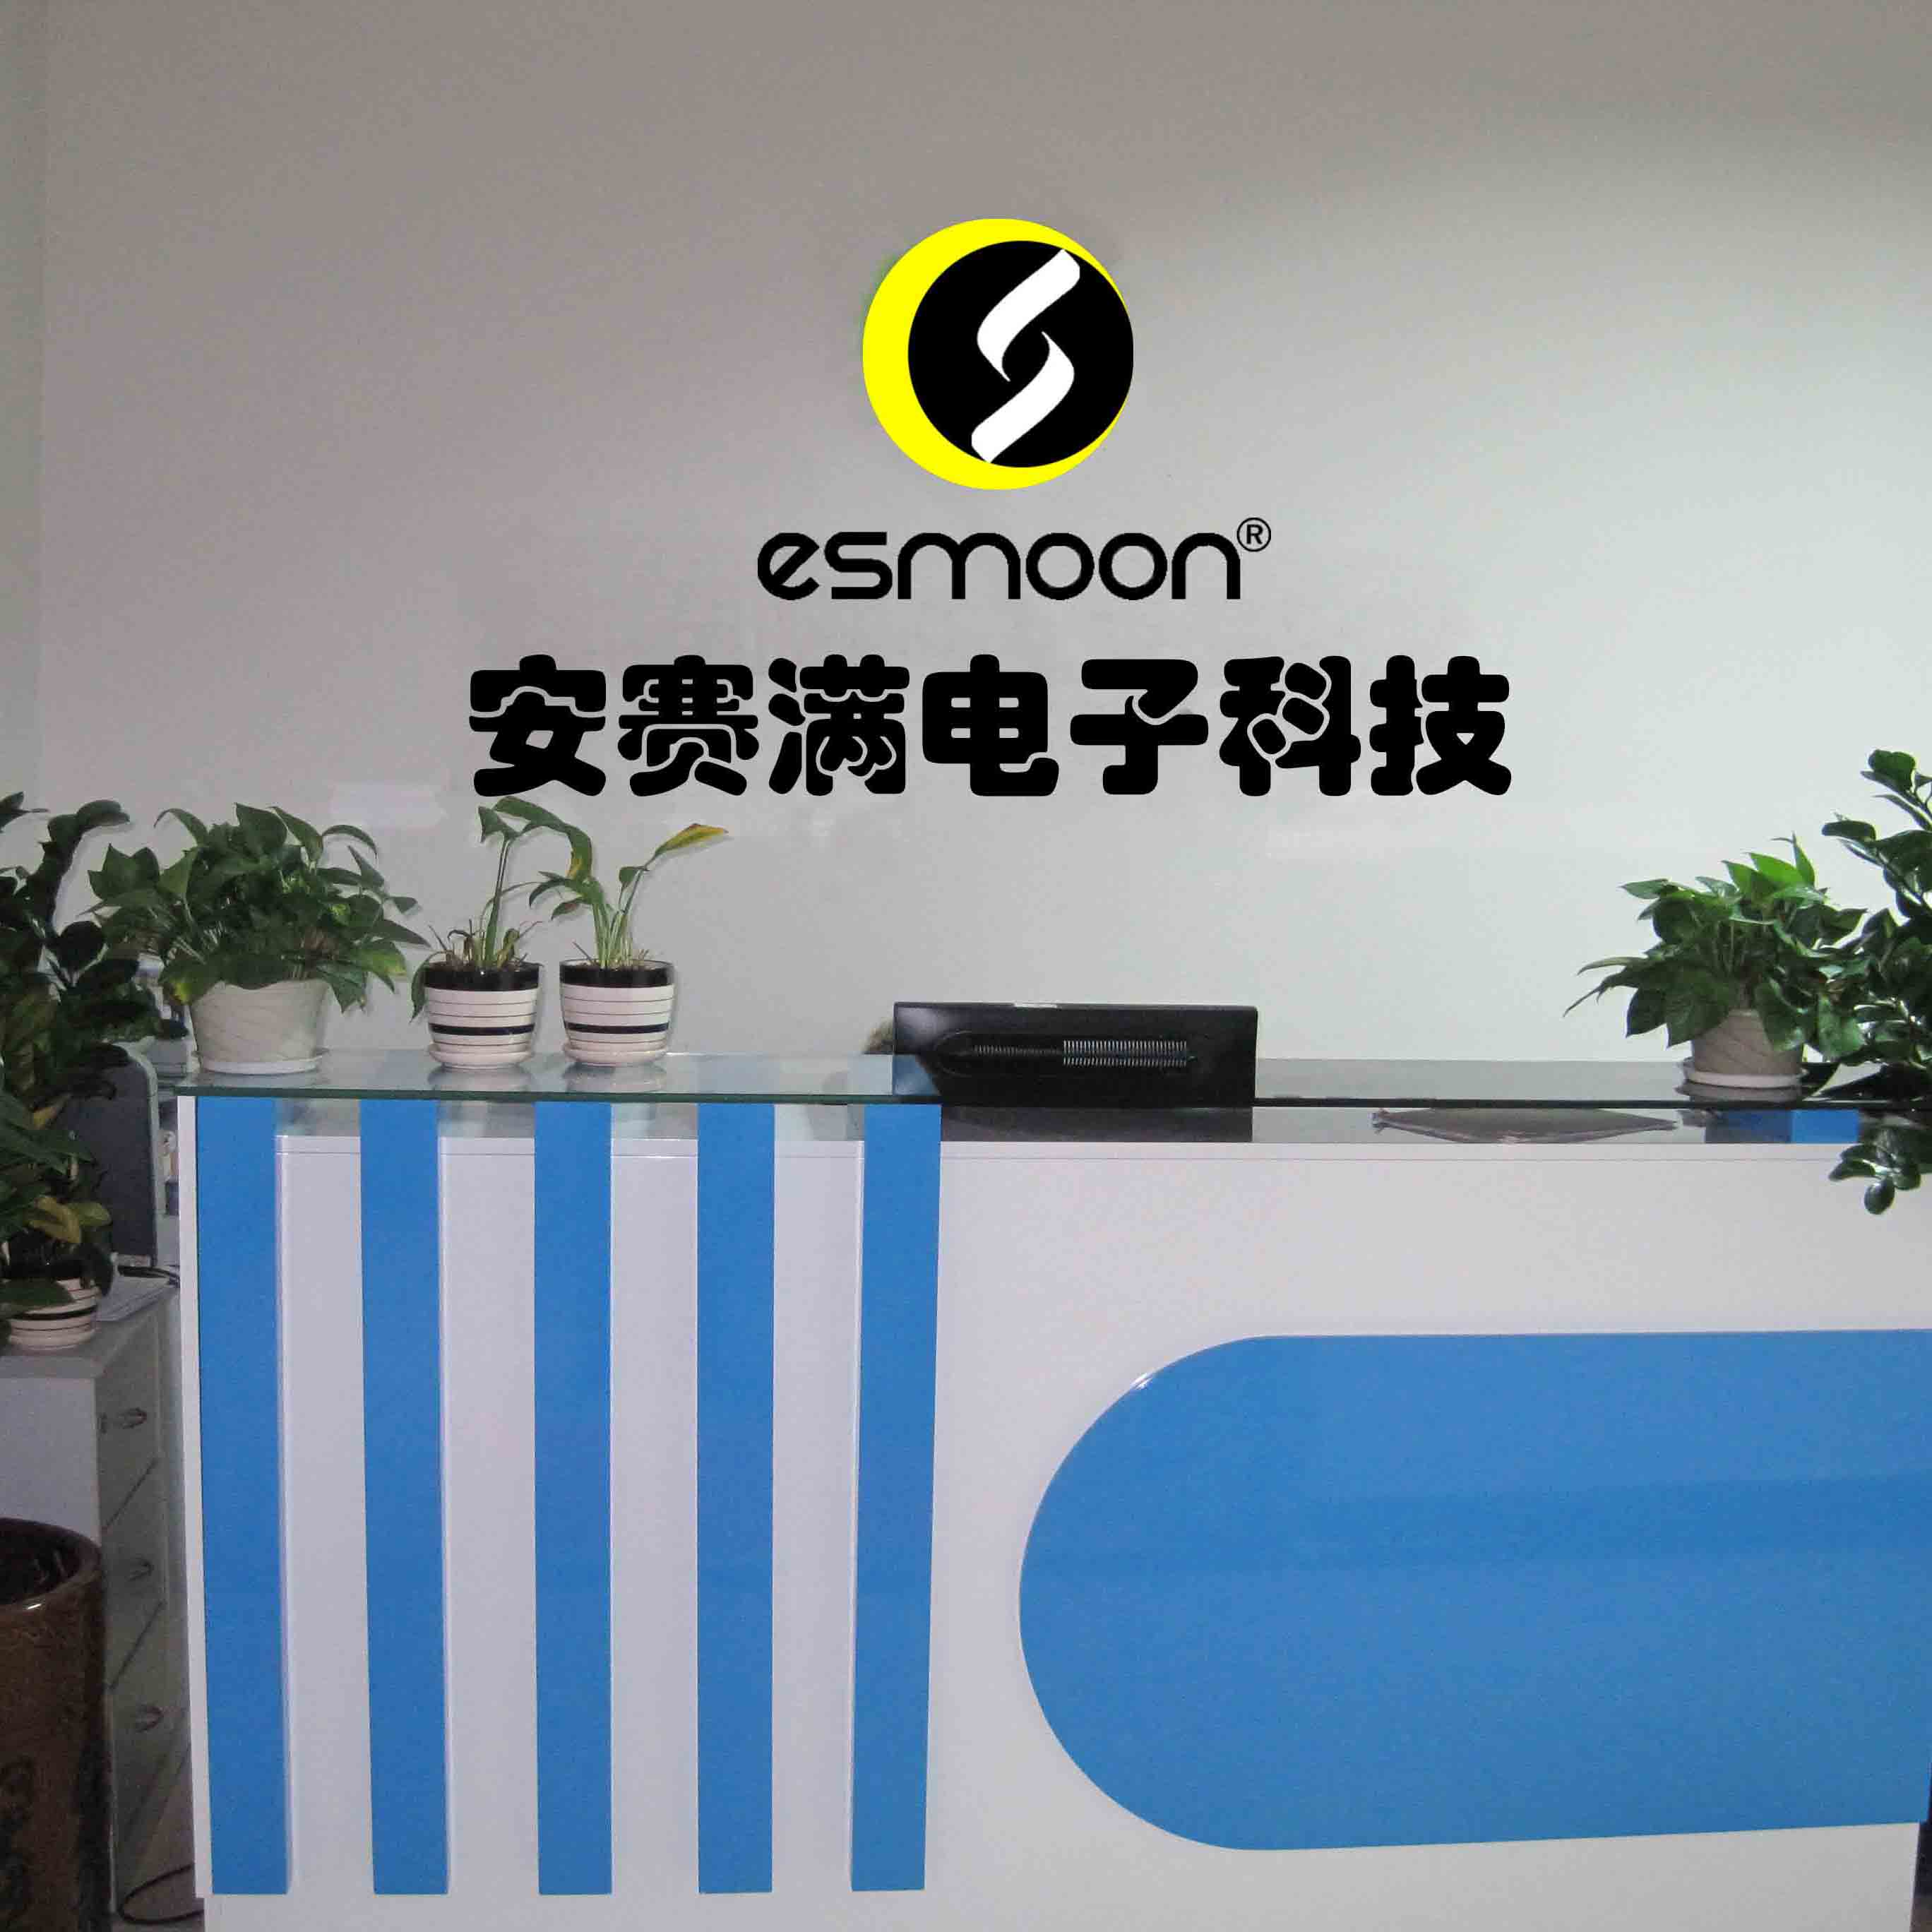 Shenzhen Esmoon Electronic Technology Co., Ltd. Main Image